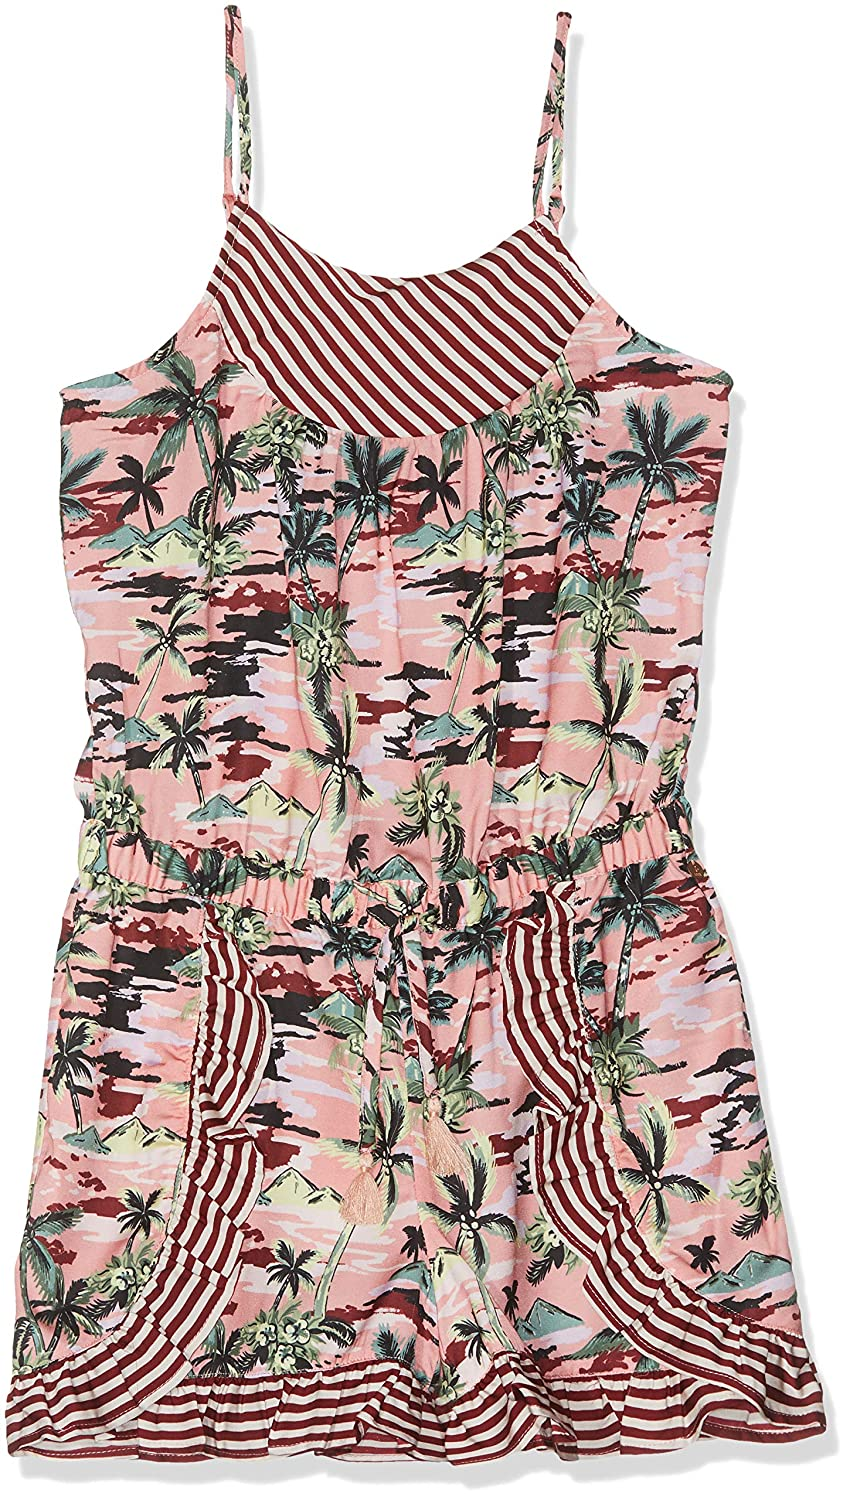 MultiCouleure (Combo H 587)  Scotch & Soda Drapey Woven Print Mix Playsuit with Ruffles Salopette Fille